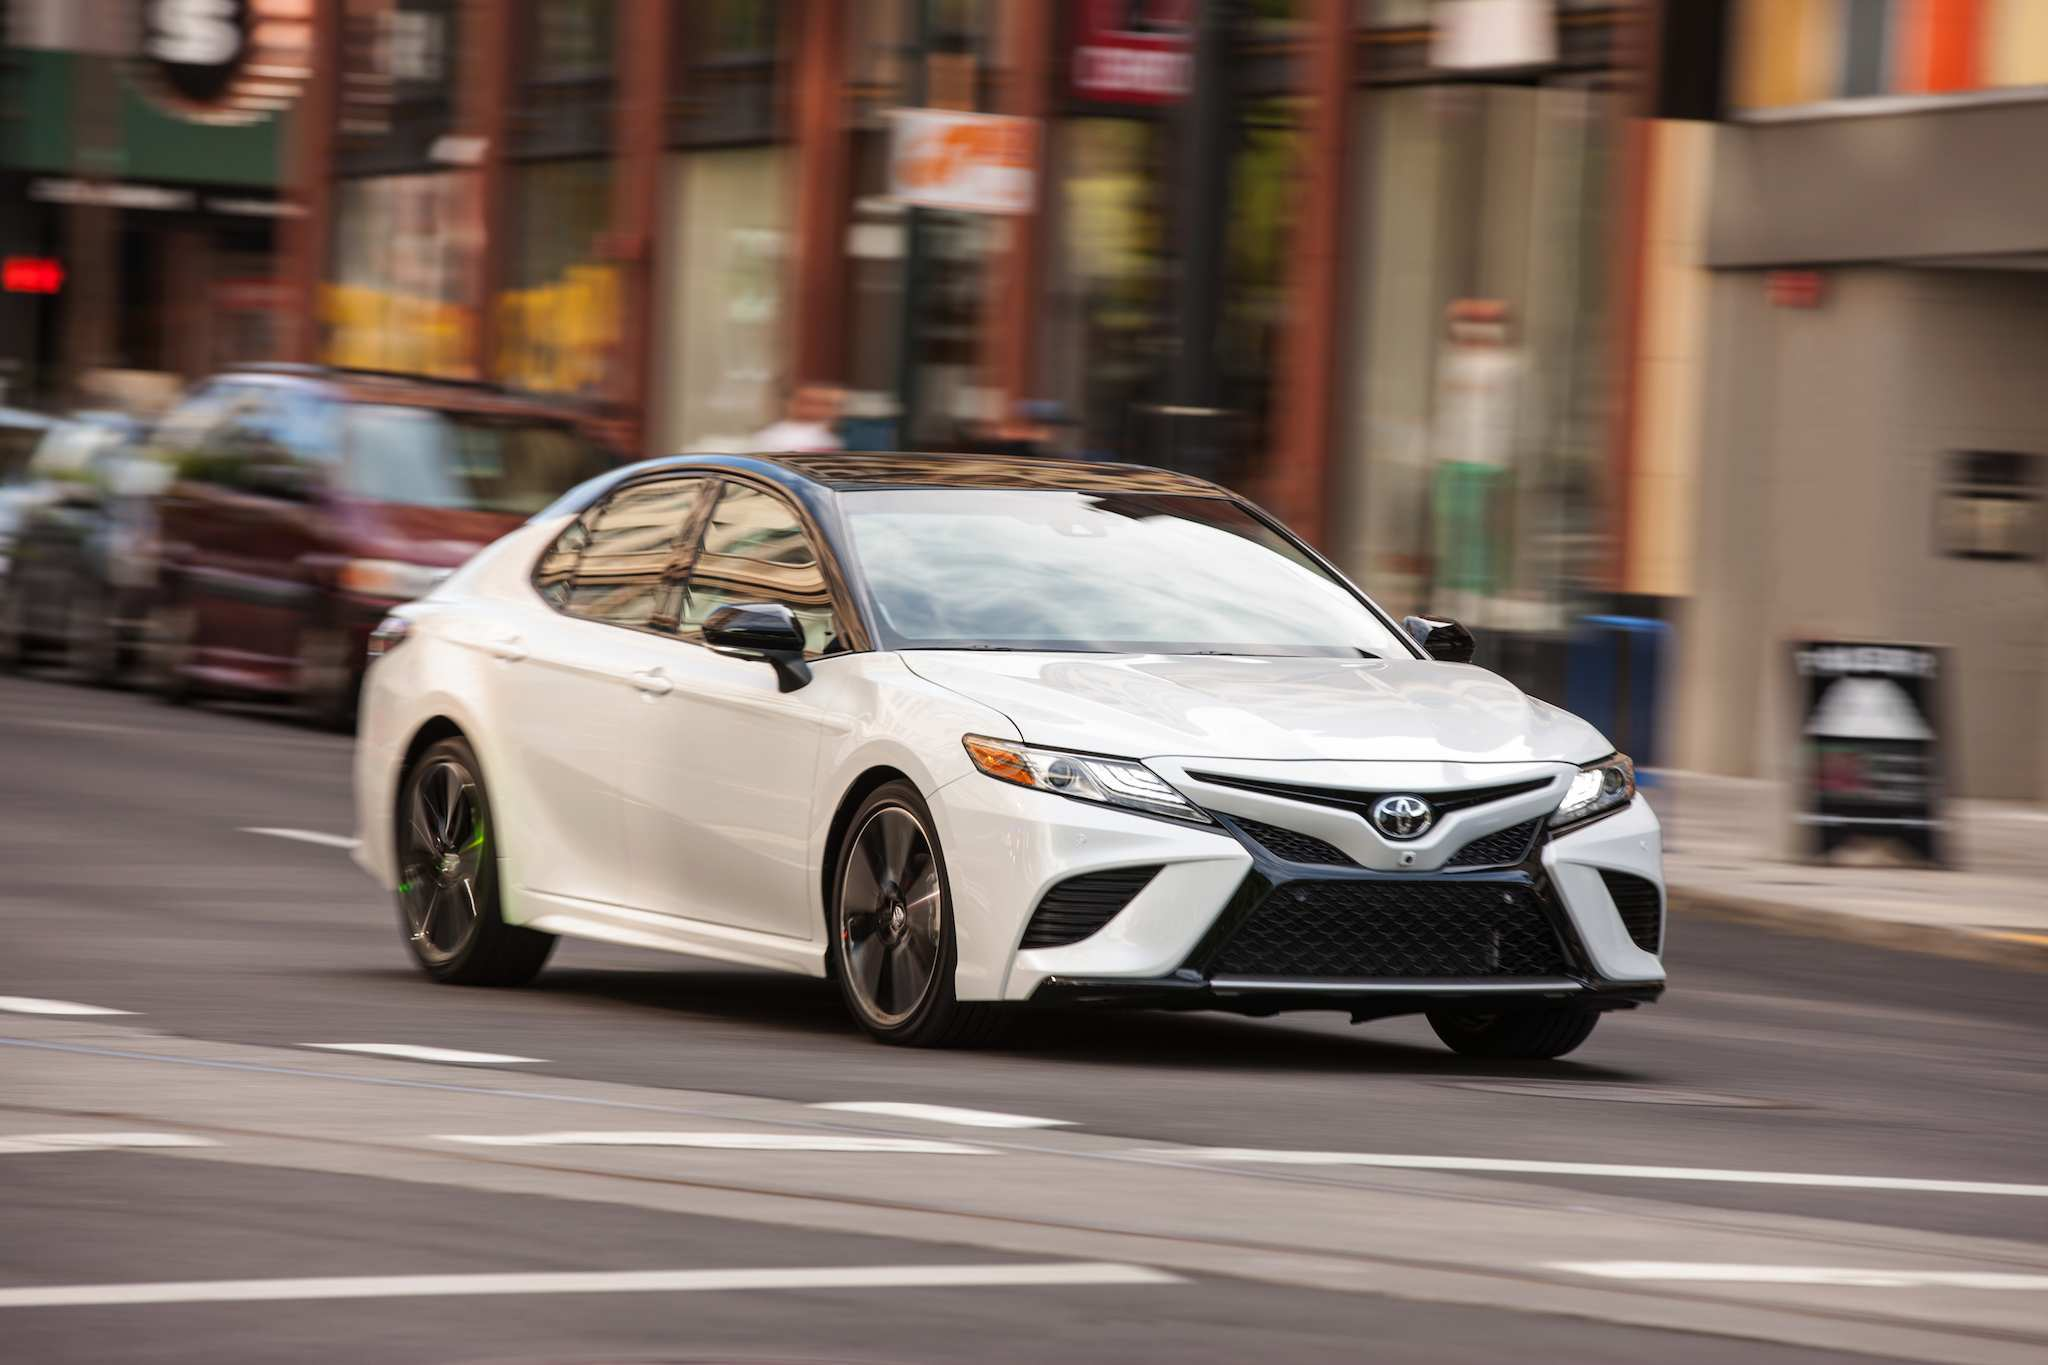 15 All New Best 2019 Toyota Camry Xle V6 Review And Price Photos for Best 2019 Toyota Camry Xle V6 Review And Price